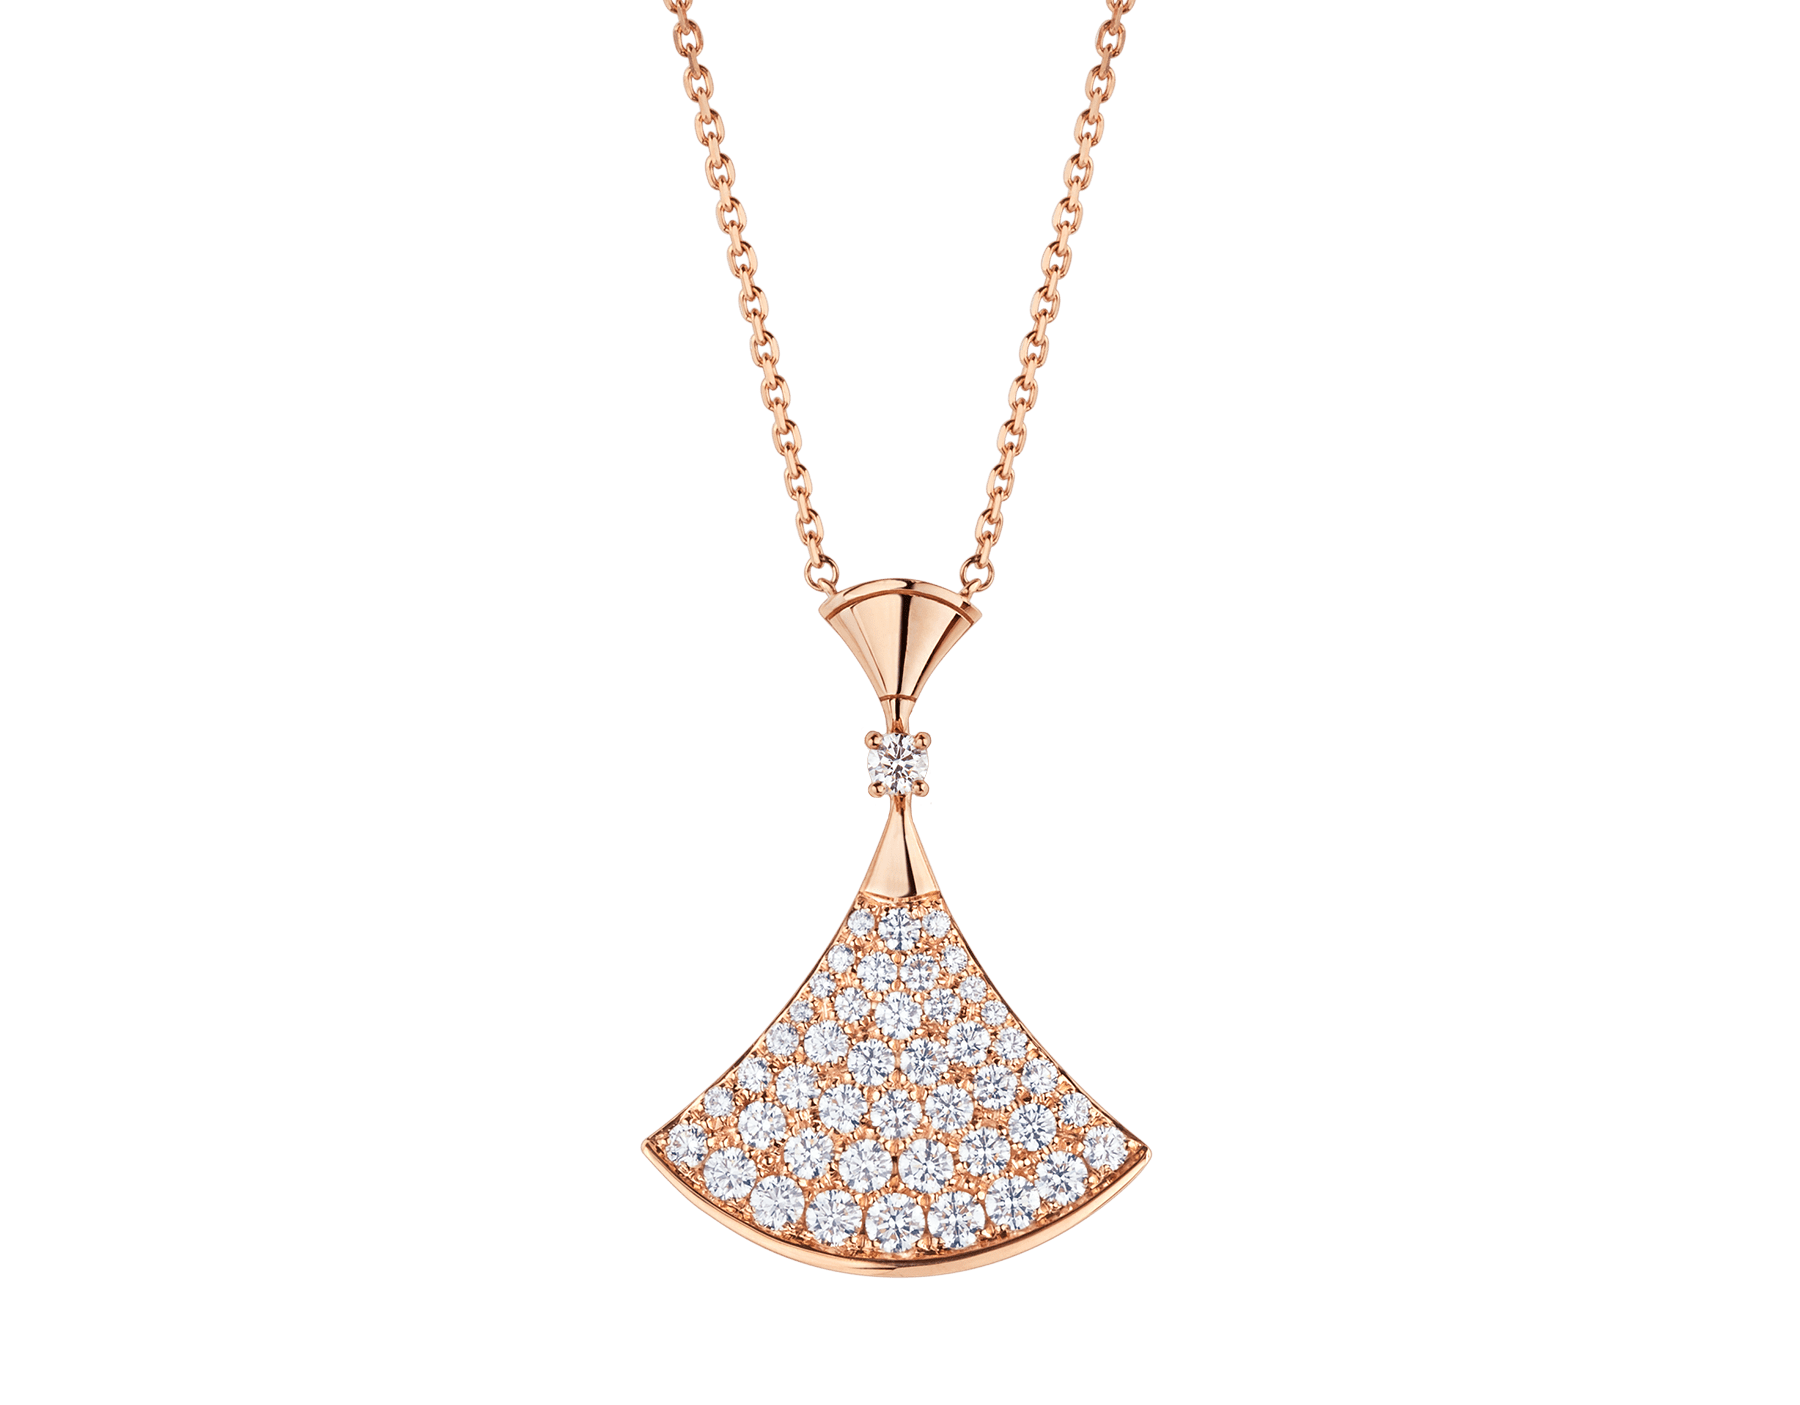 DIVAS' DREAM necklace in 18 kt rose gold with pendant set with one diamond and pavé diamonds. 350067 image 1